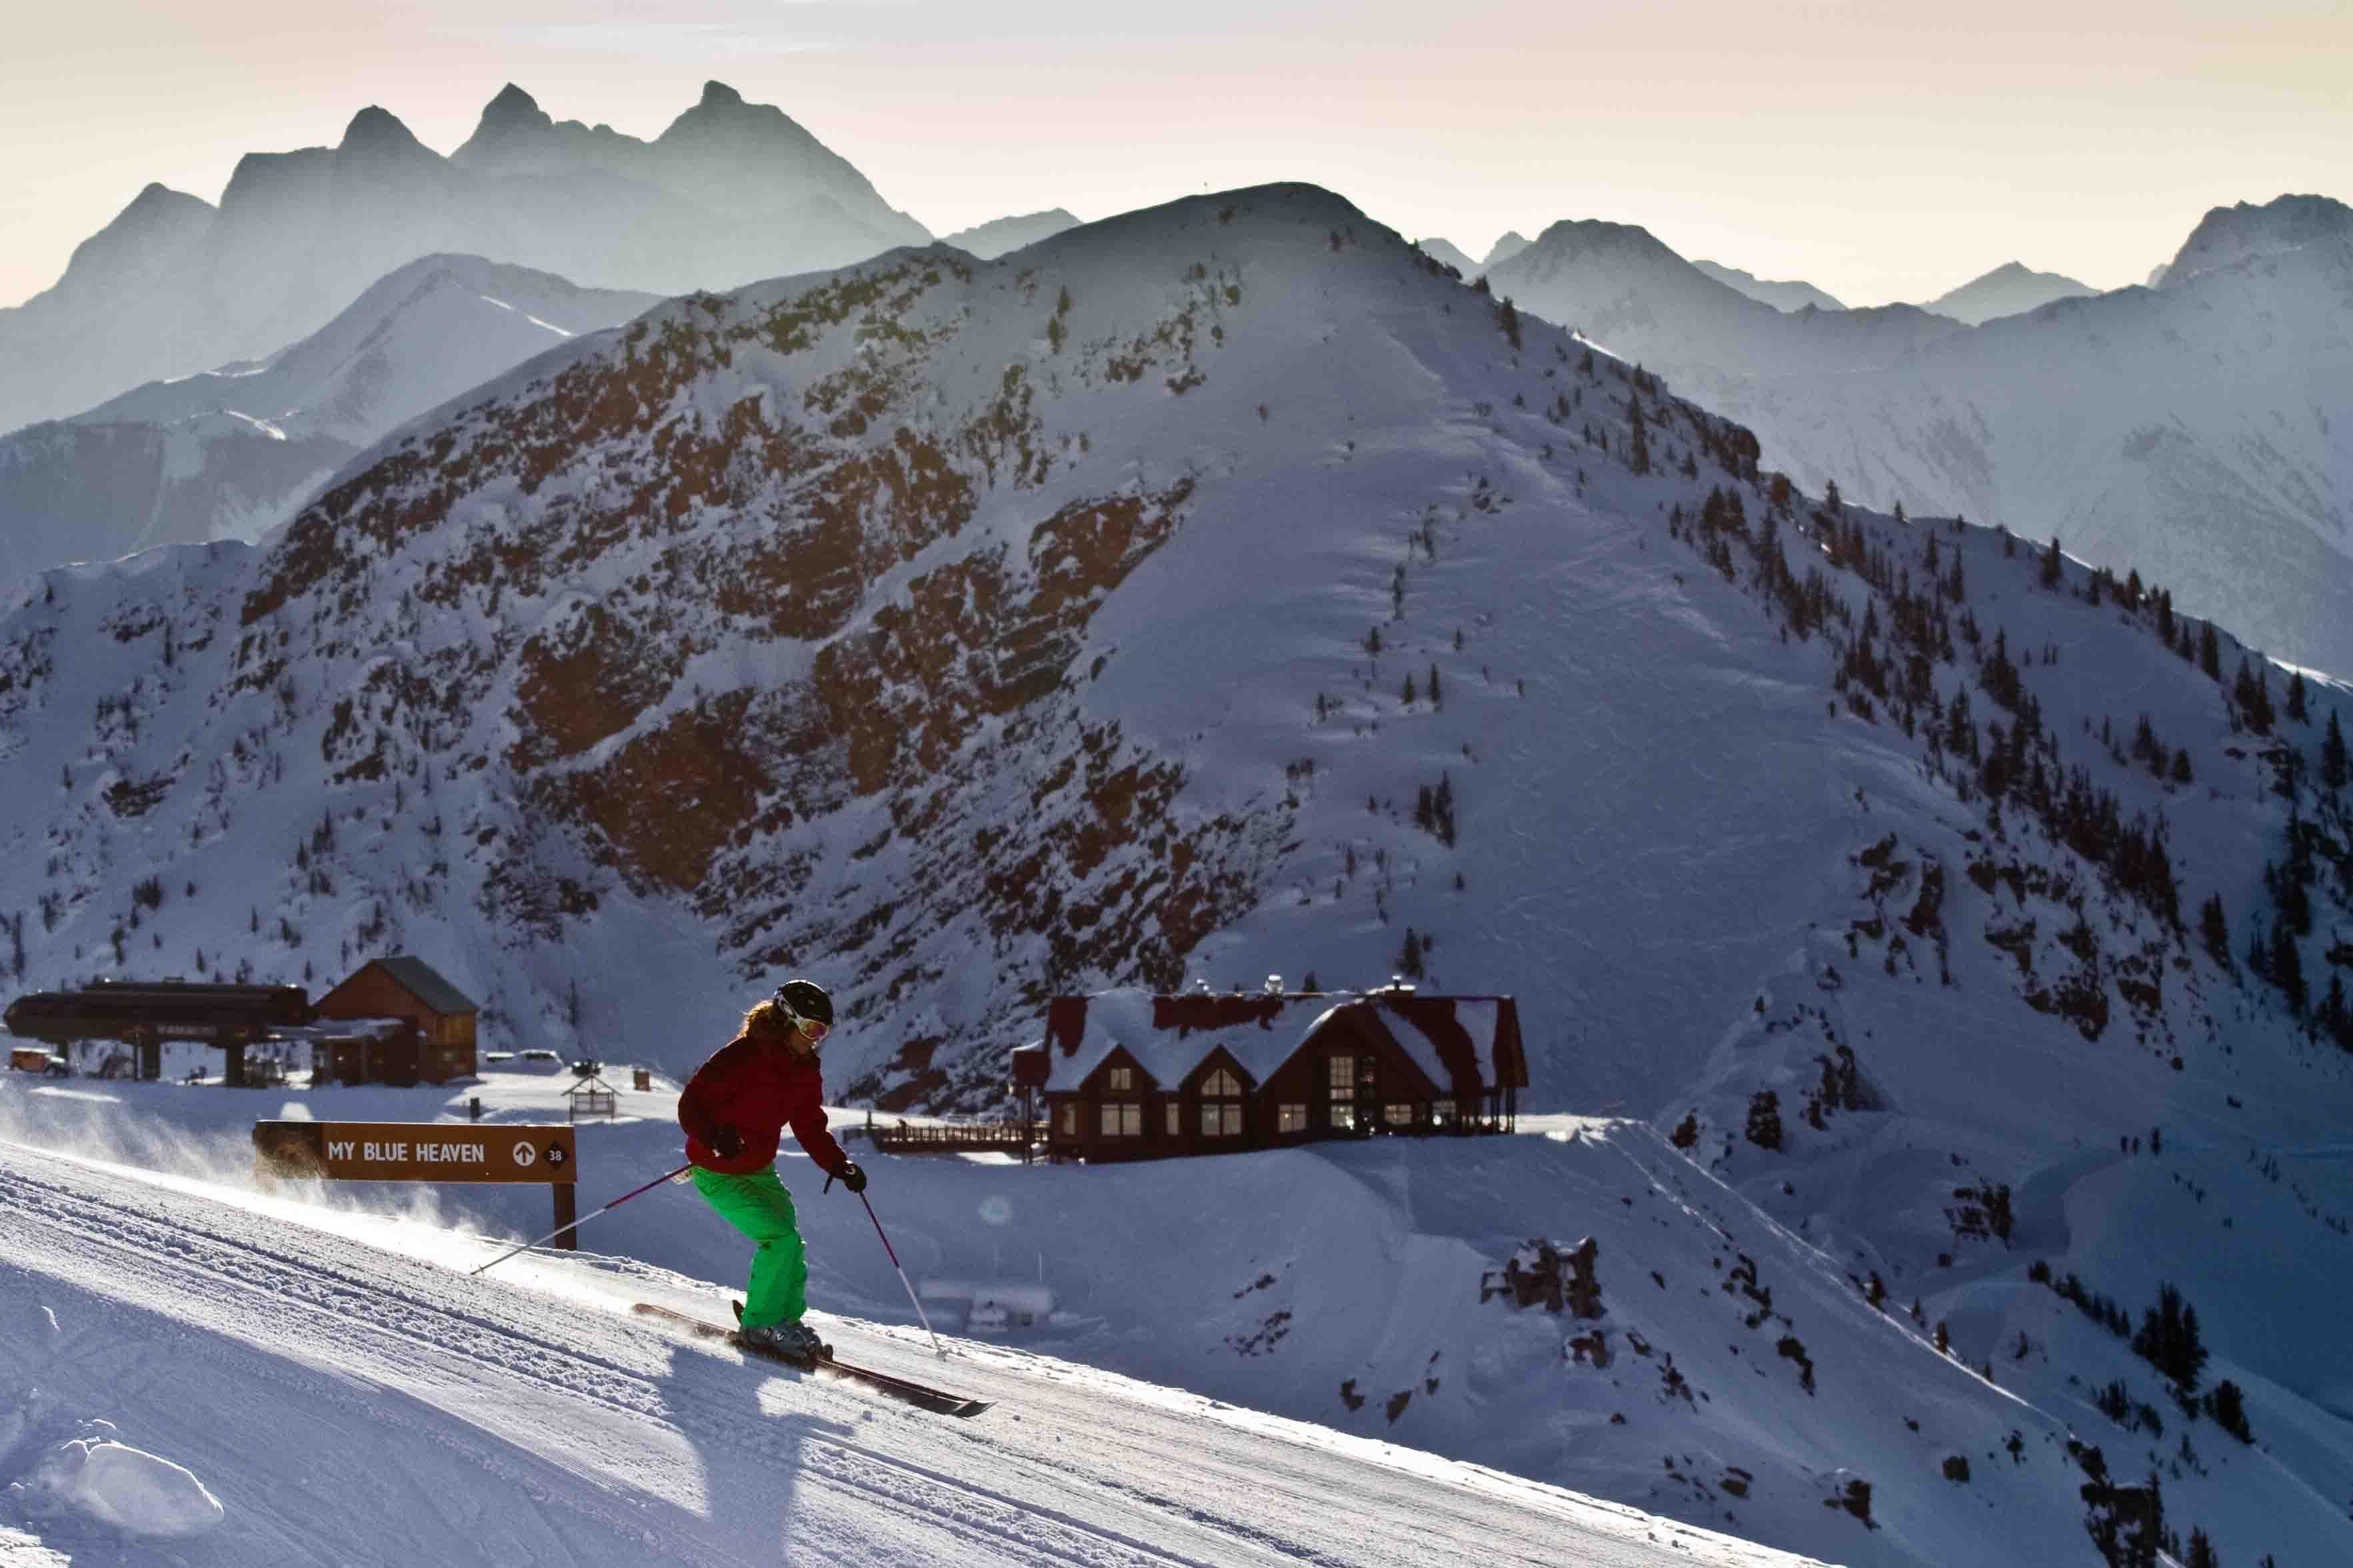 kicking_horse_skier_piste_credit_kicking_horse_resort.jpg